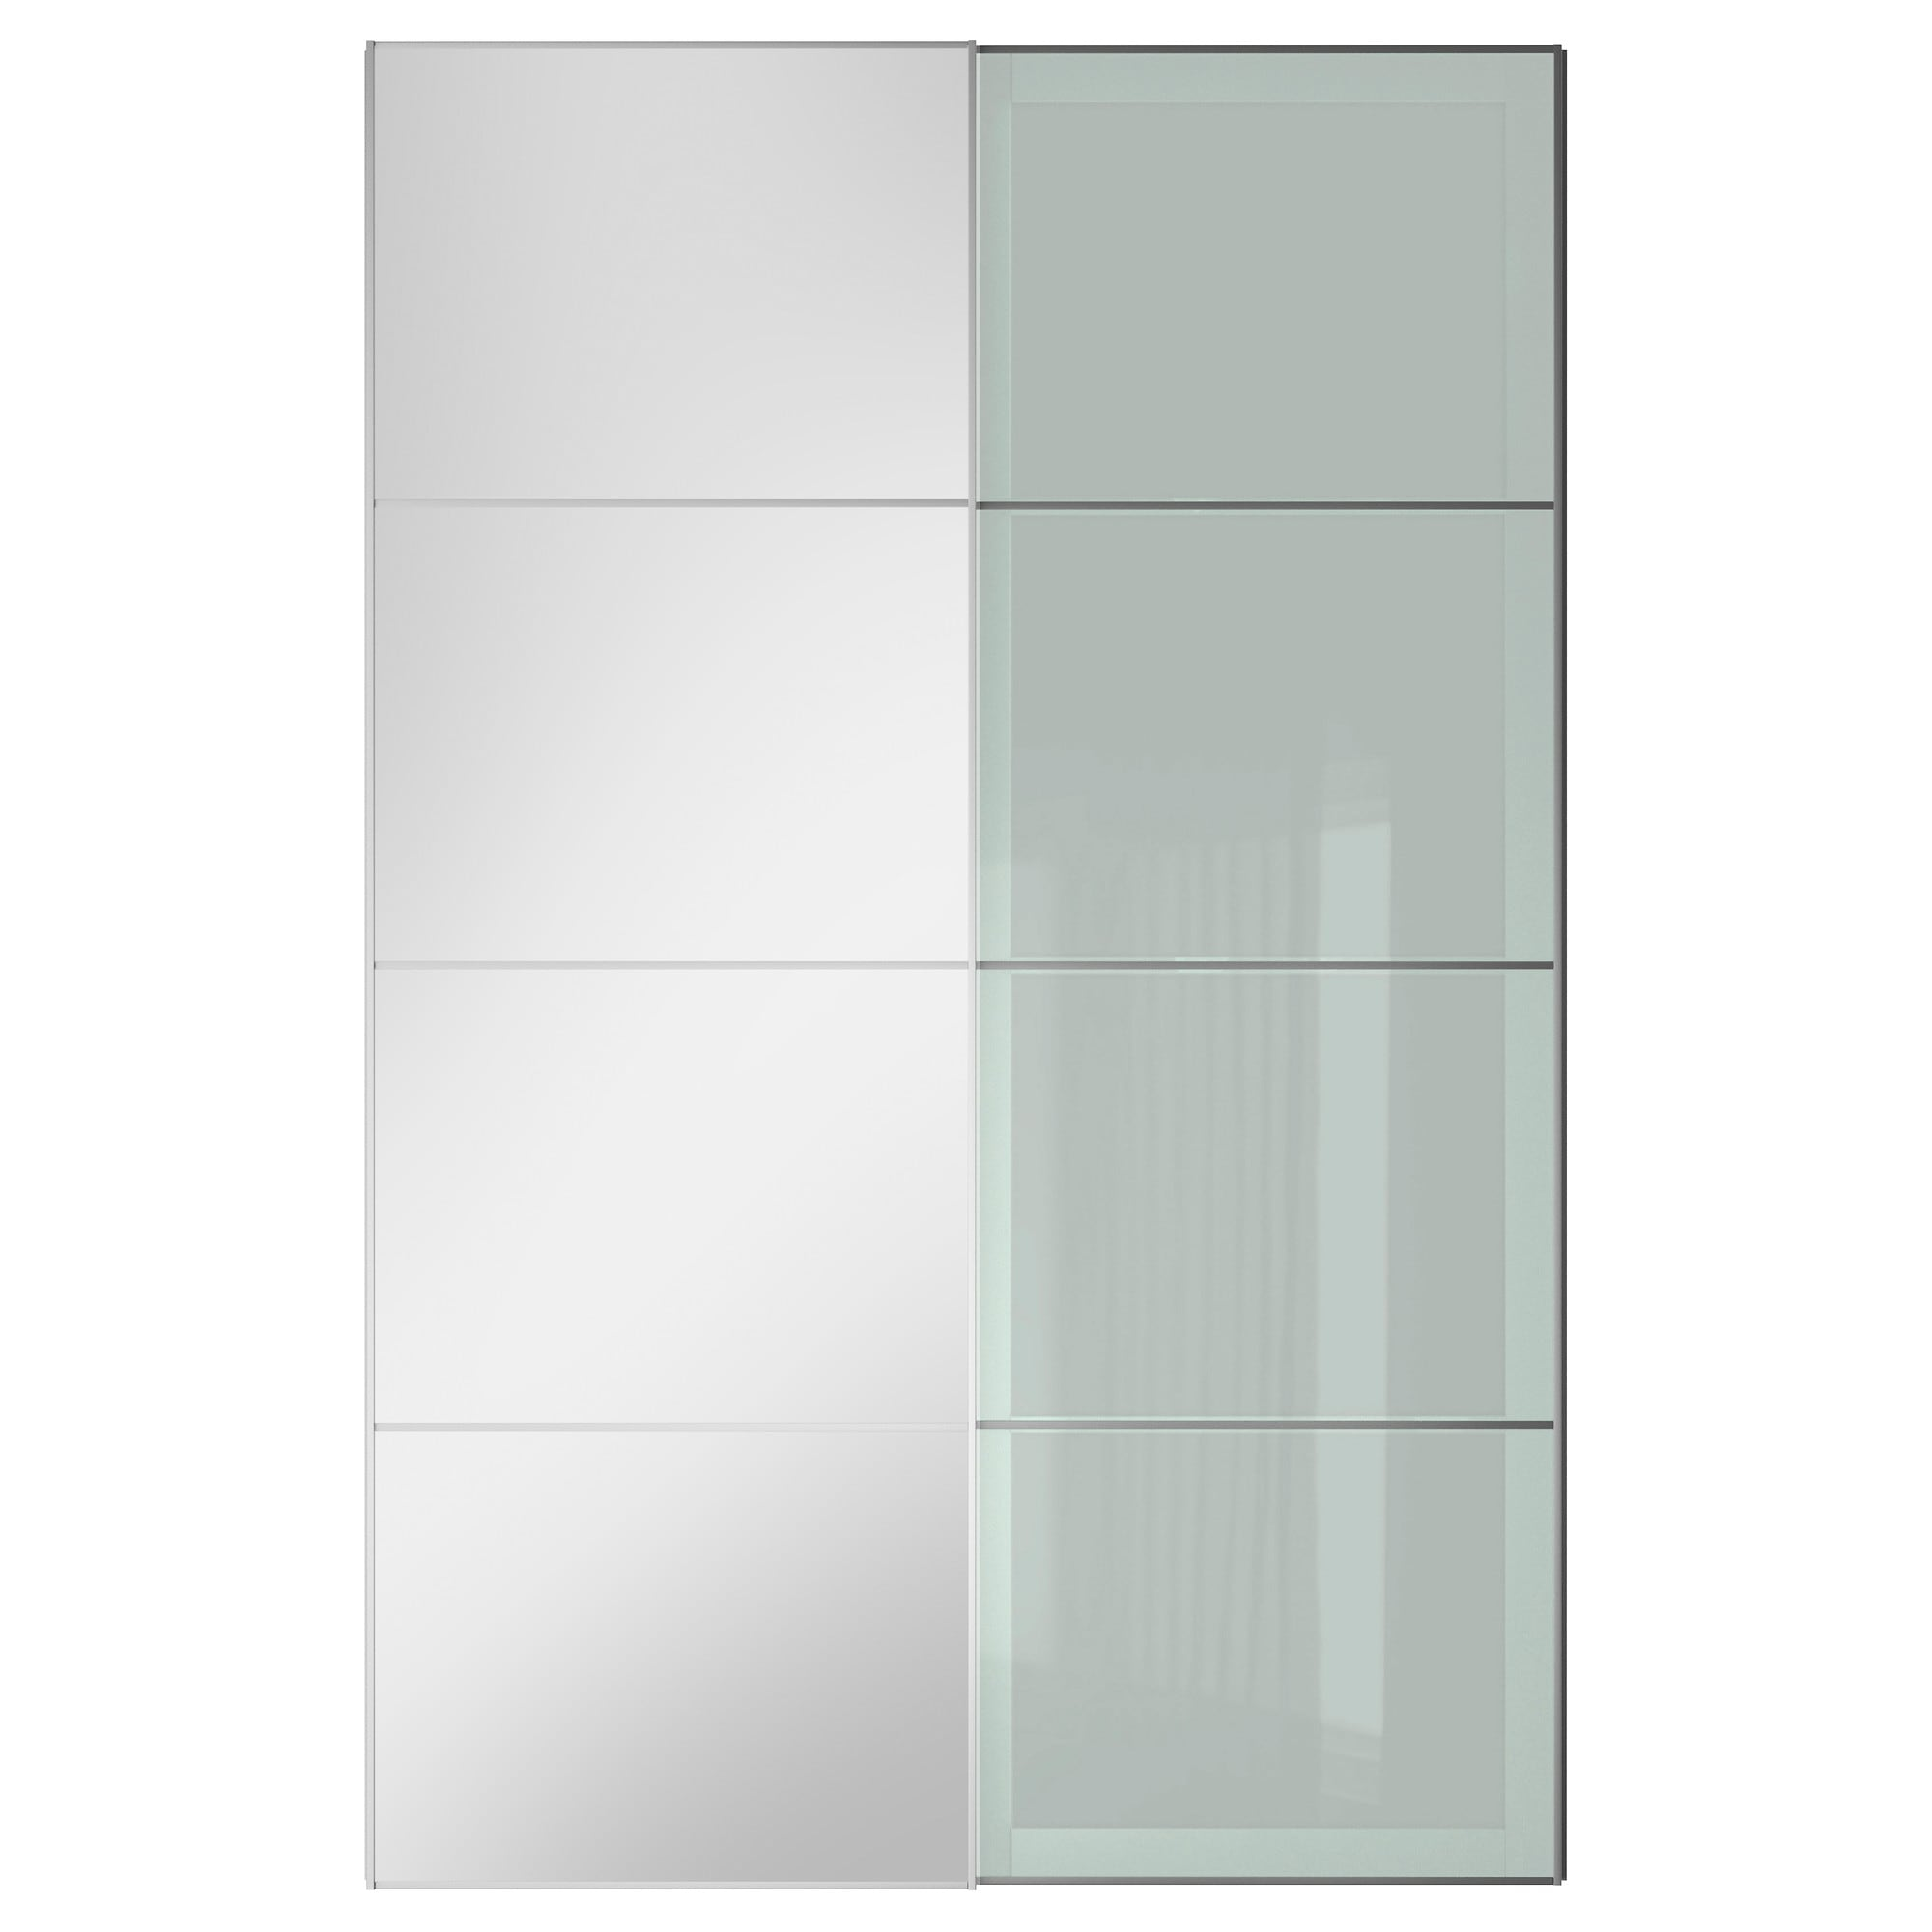 Ikea closet doors roselawnlutheran for Sliding mirror doors